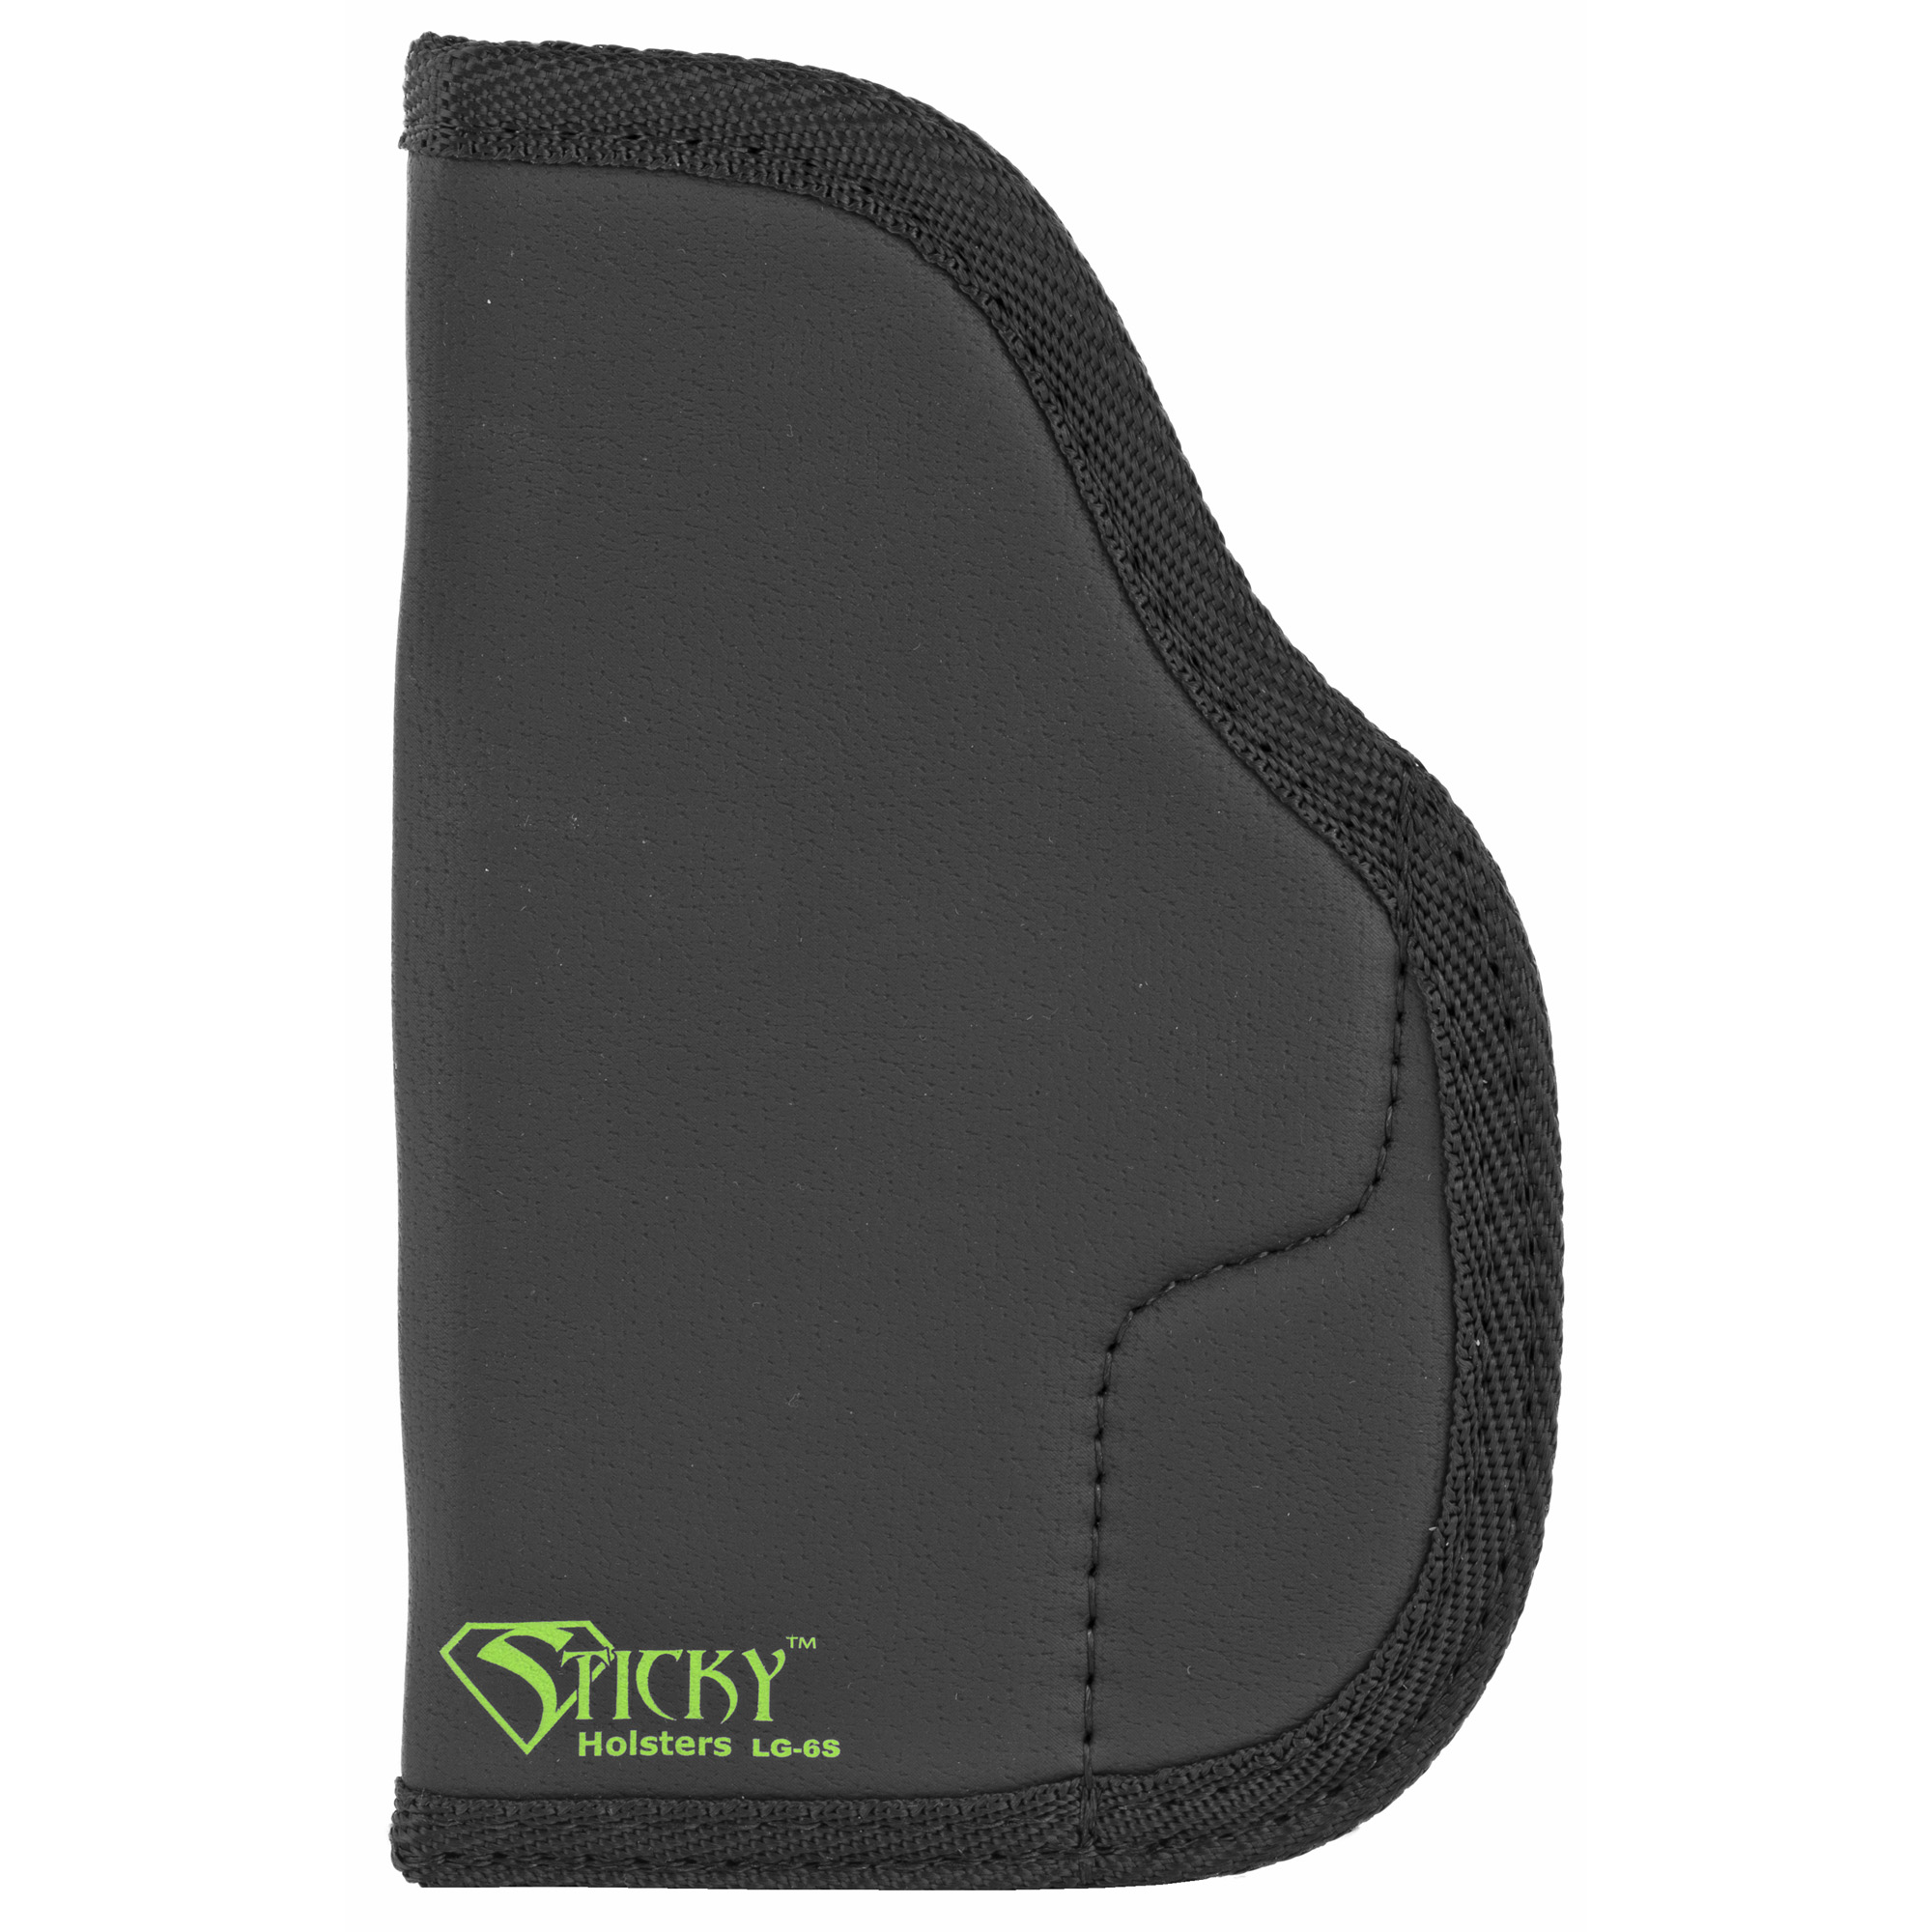 "Their holsters are the most versatile"" comfortable and convenient on the market. The holster uses a high friction synthetic rubber to stay in place. These can be worn in the waistband or in a pocket or on the ankle. Also available in modified versions that fit most lights and lasers."